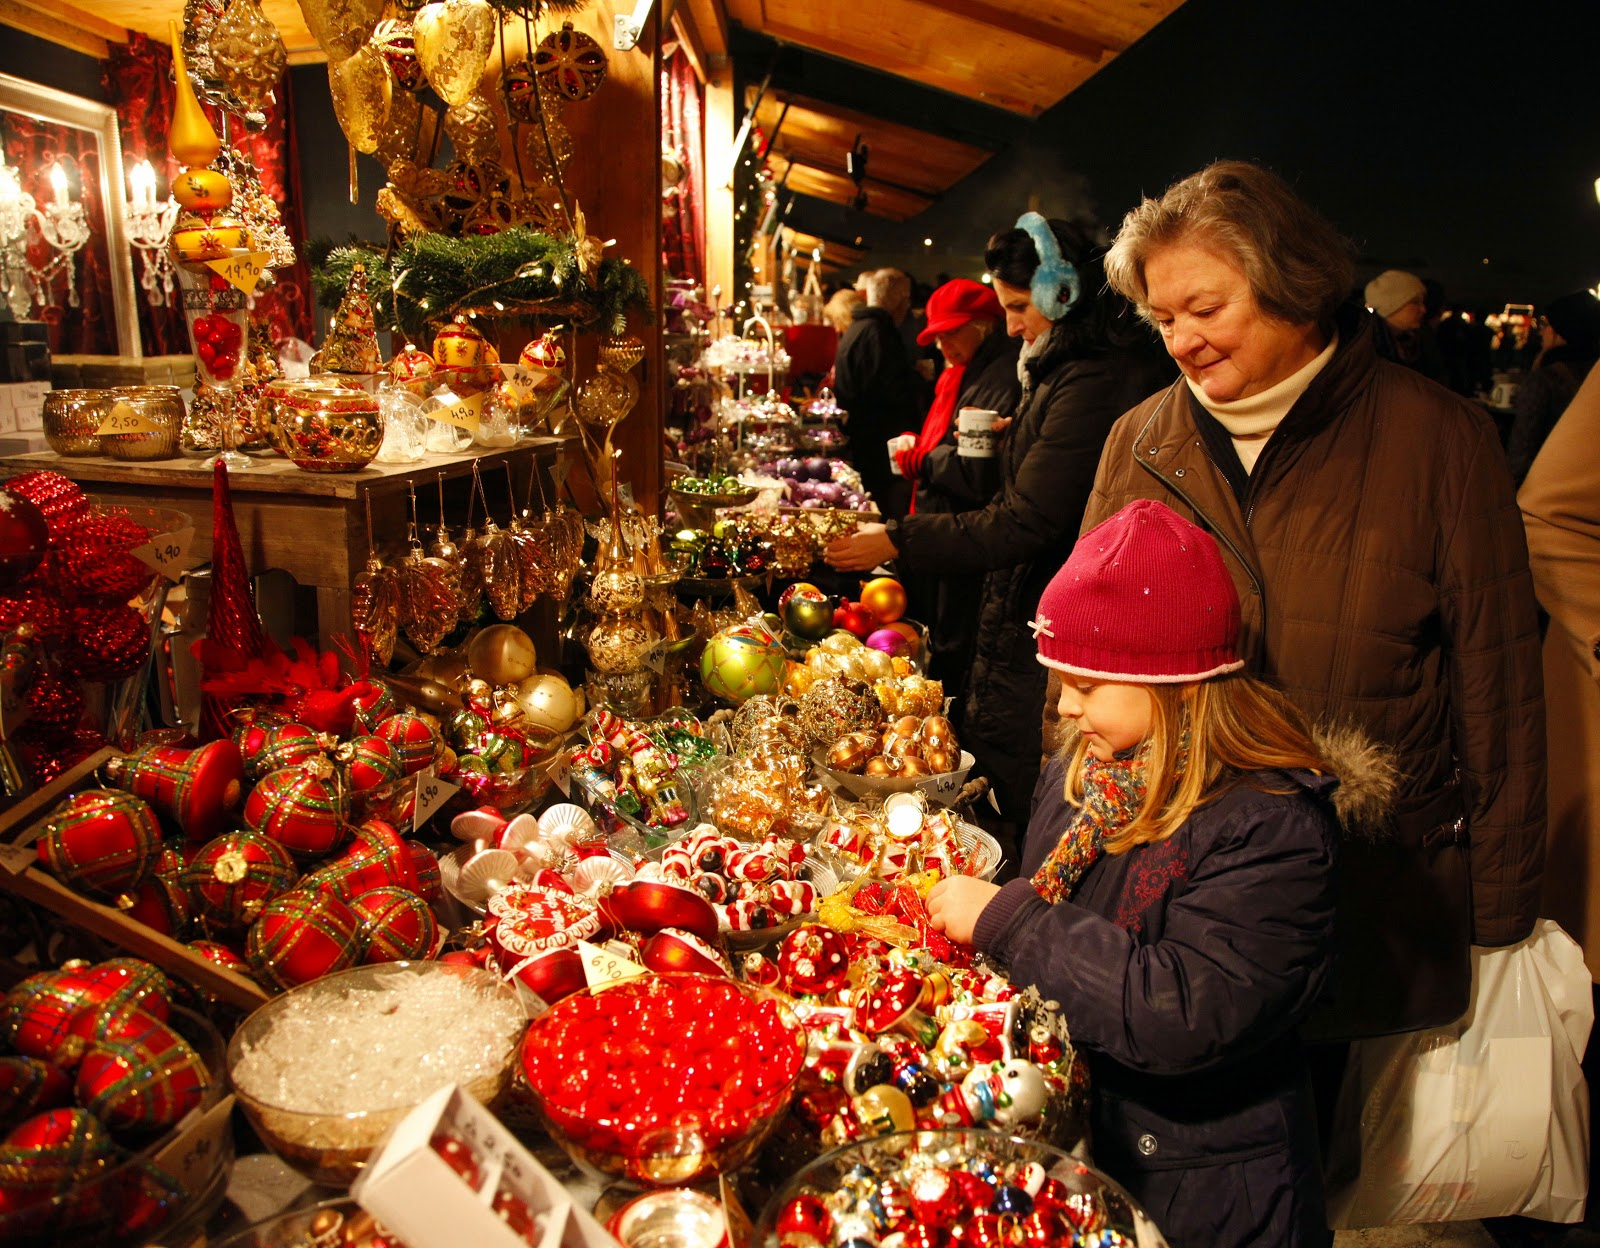 Traditional Christmas ornaments and baubles of every size, shape and color can be found in any number of the Alpine Chalets lining all of the Christmas market squares. Photo: Courtesy of Austria Tourism © Gerhard Fally. Unauthorized use is prohibited.